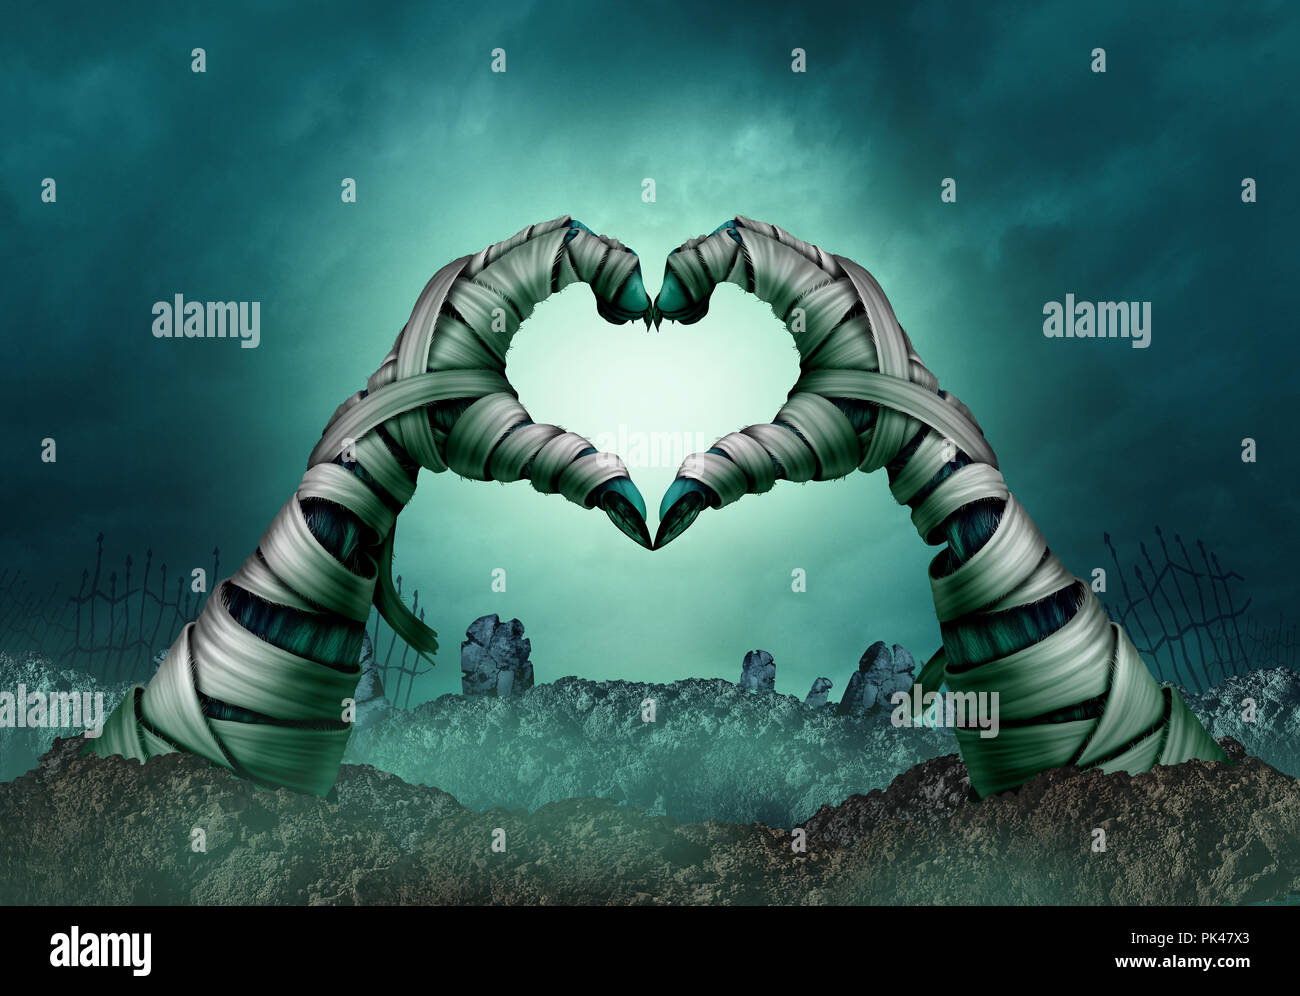 Mummy hand heart shape in a creepy night graveyard background as zombie halloween arms emerging from a cemetery grave or scary. - Stock Image